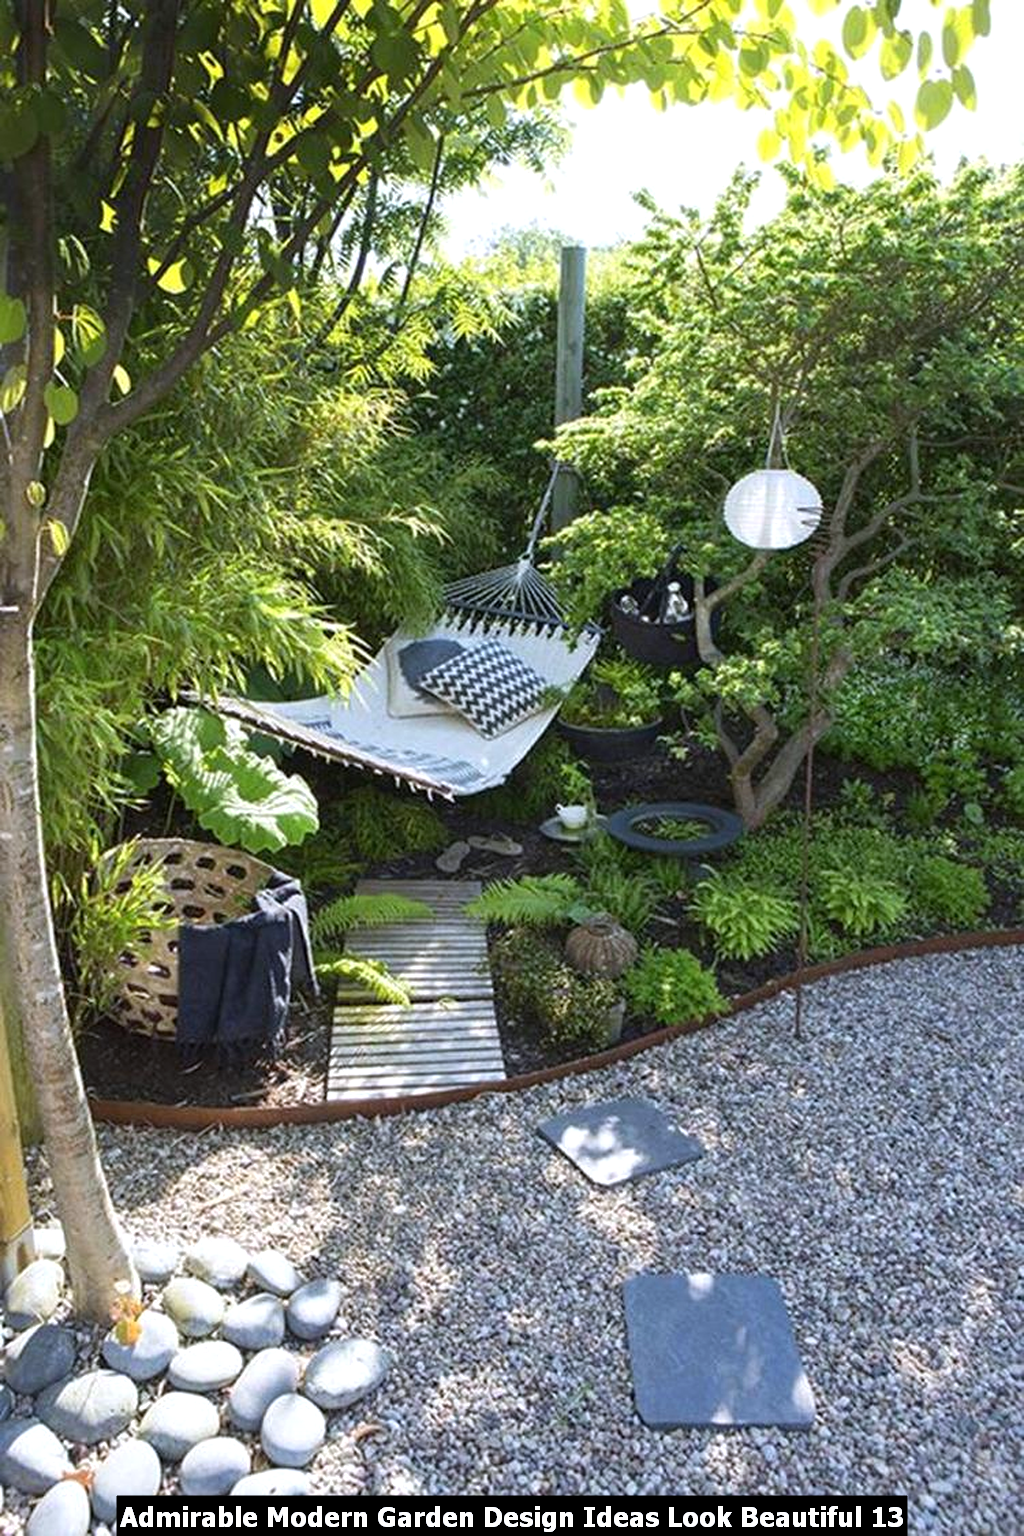 Admirable Modern Garden Design Ideas Look Beautiful 13